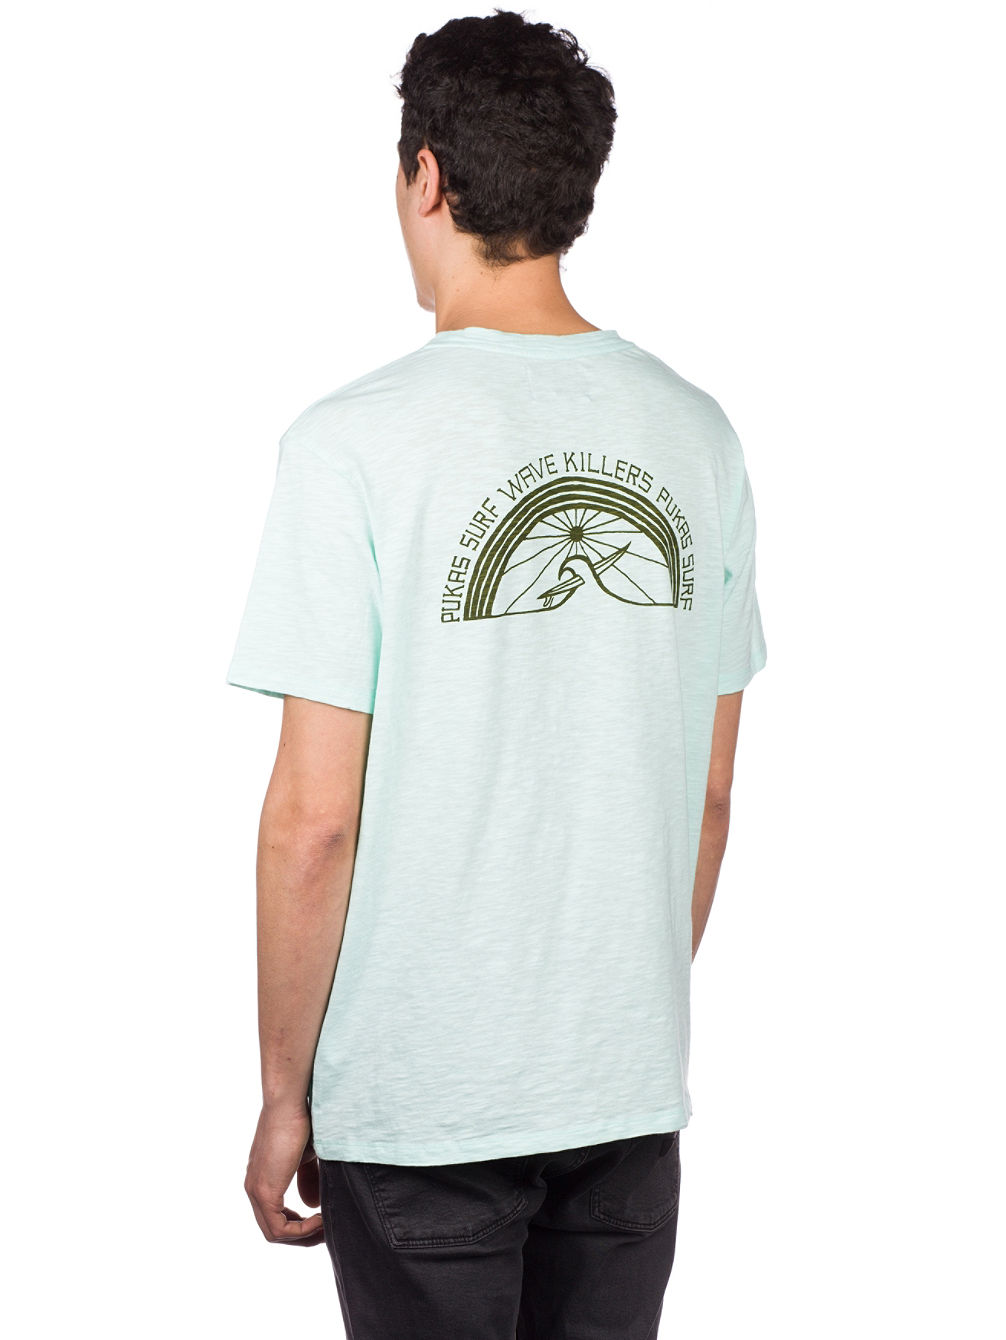 Wave Killers T-Shirt